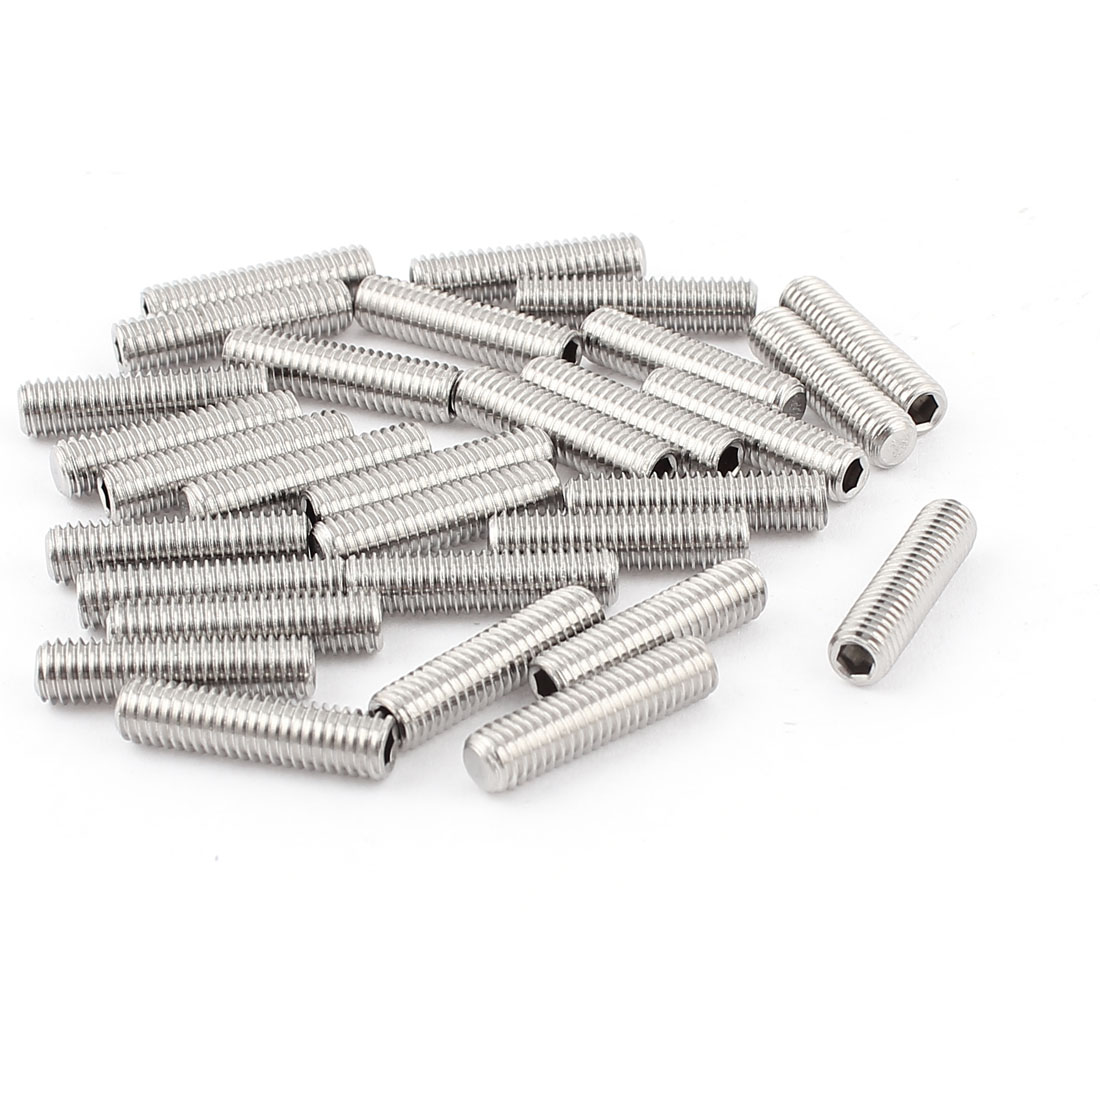 5mm x 20mm Stainless Steel Hexagon Socket Head Set Cup Point Grub Screws 30pcs